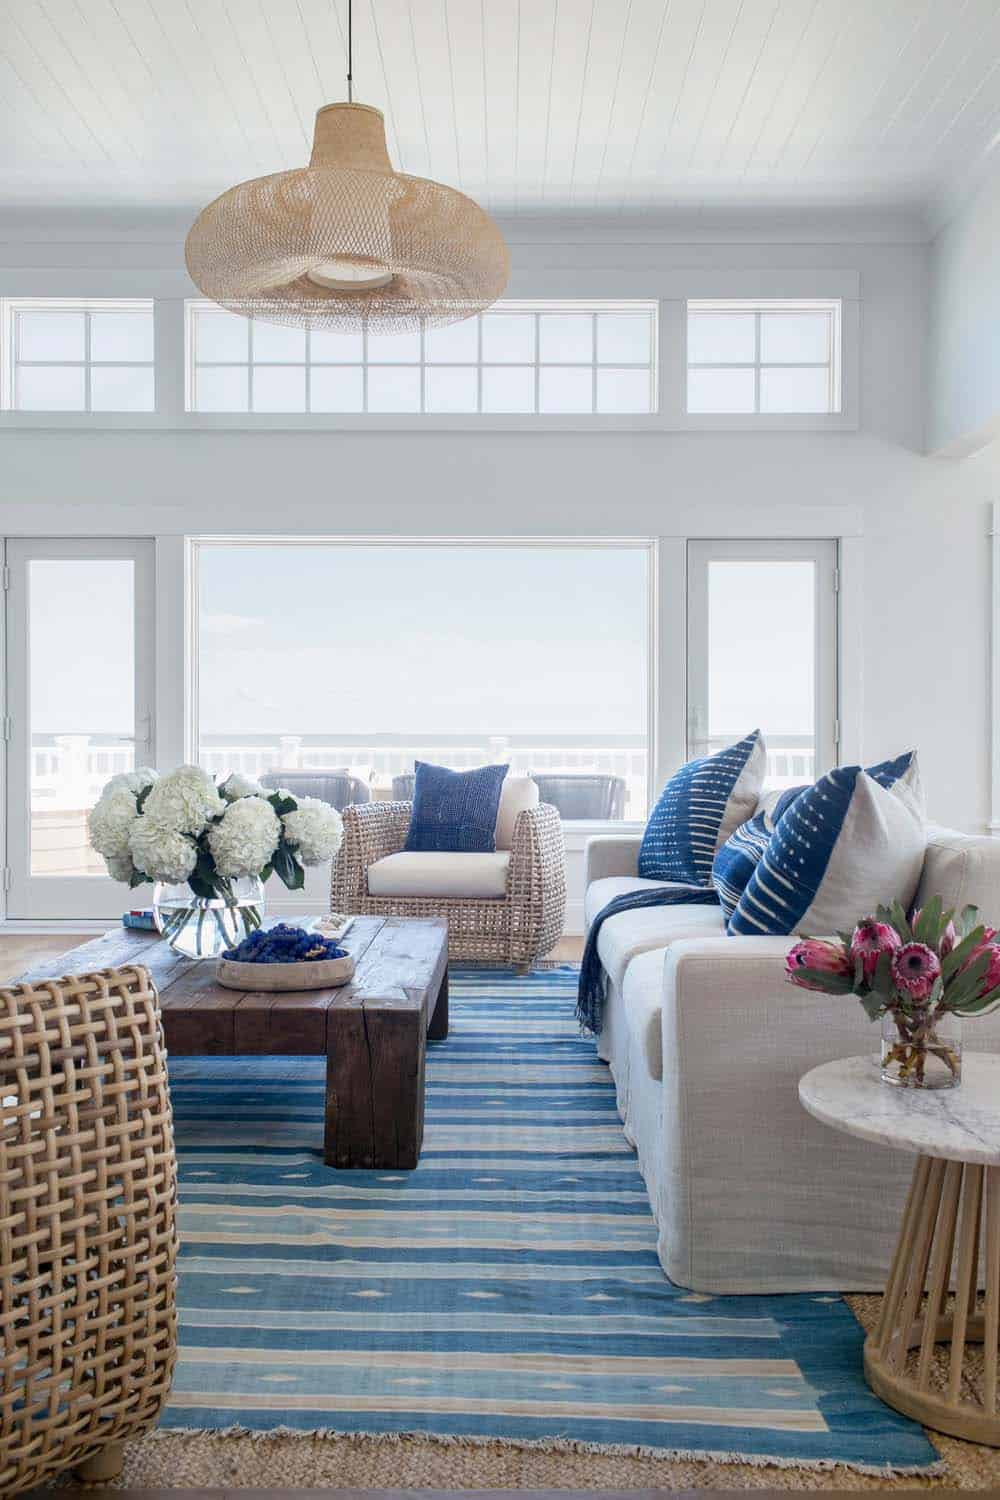 Coastal-Chic Beach Home-Chango Co-02-1 Kindesign